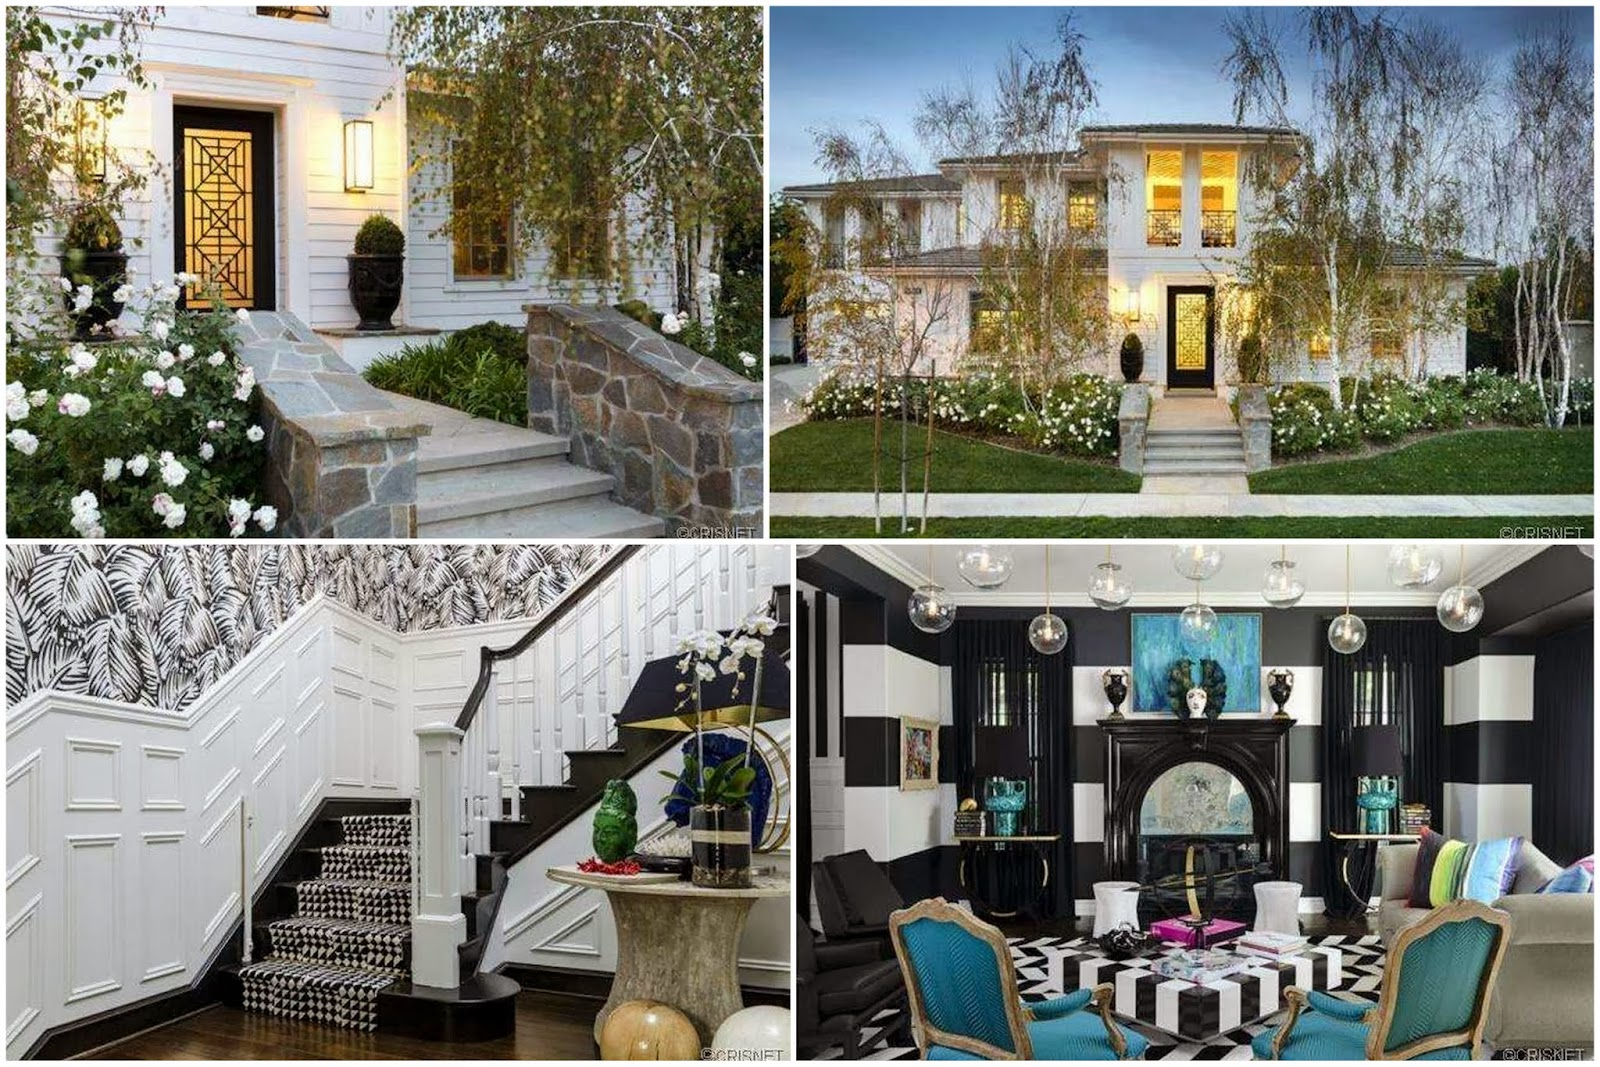 Celeb R E Kourtney Kardashian Lists Calabasas Home And Purchases Keyshawn Johnson 39 S Calabasas